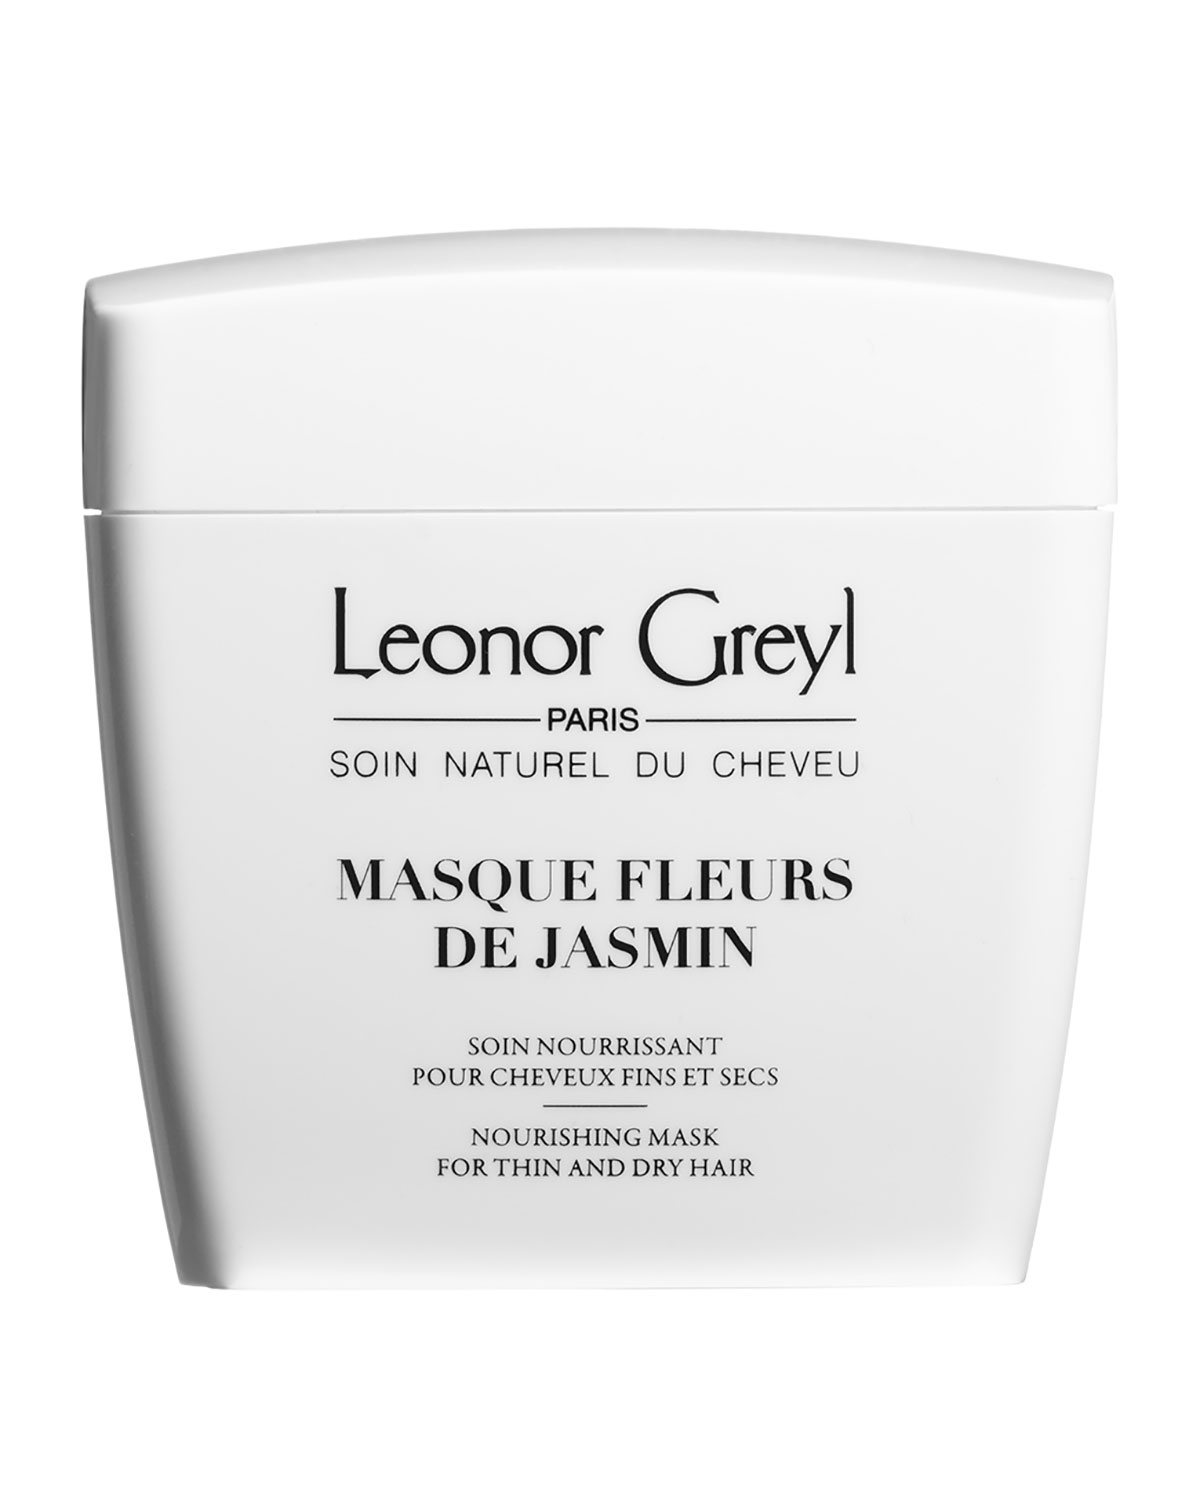 Leonor Greyl Masque Fleurs de Jasmin (Nourishing Mask for Thin and Dry Hair), 7.0 oz./ 200 mL